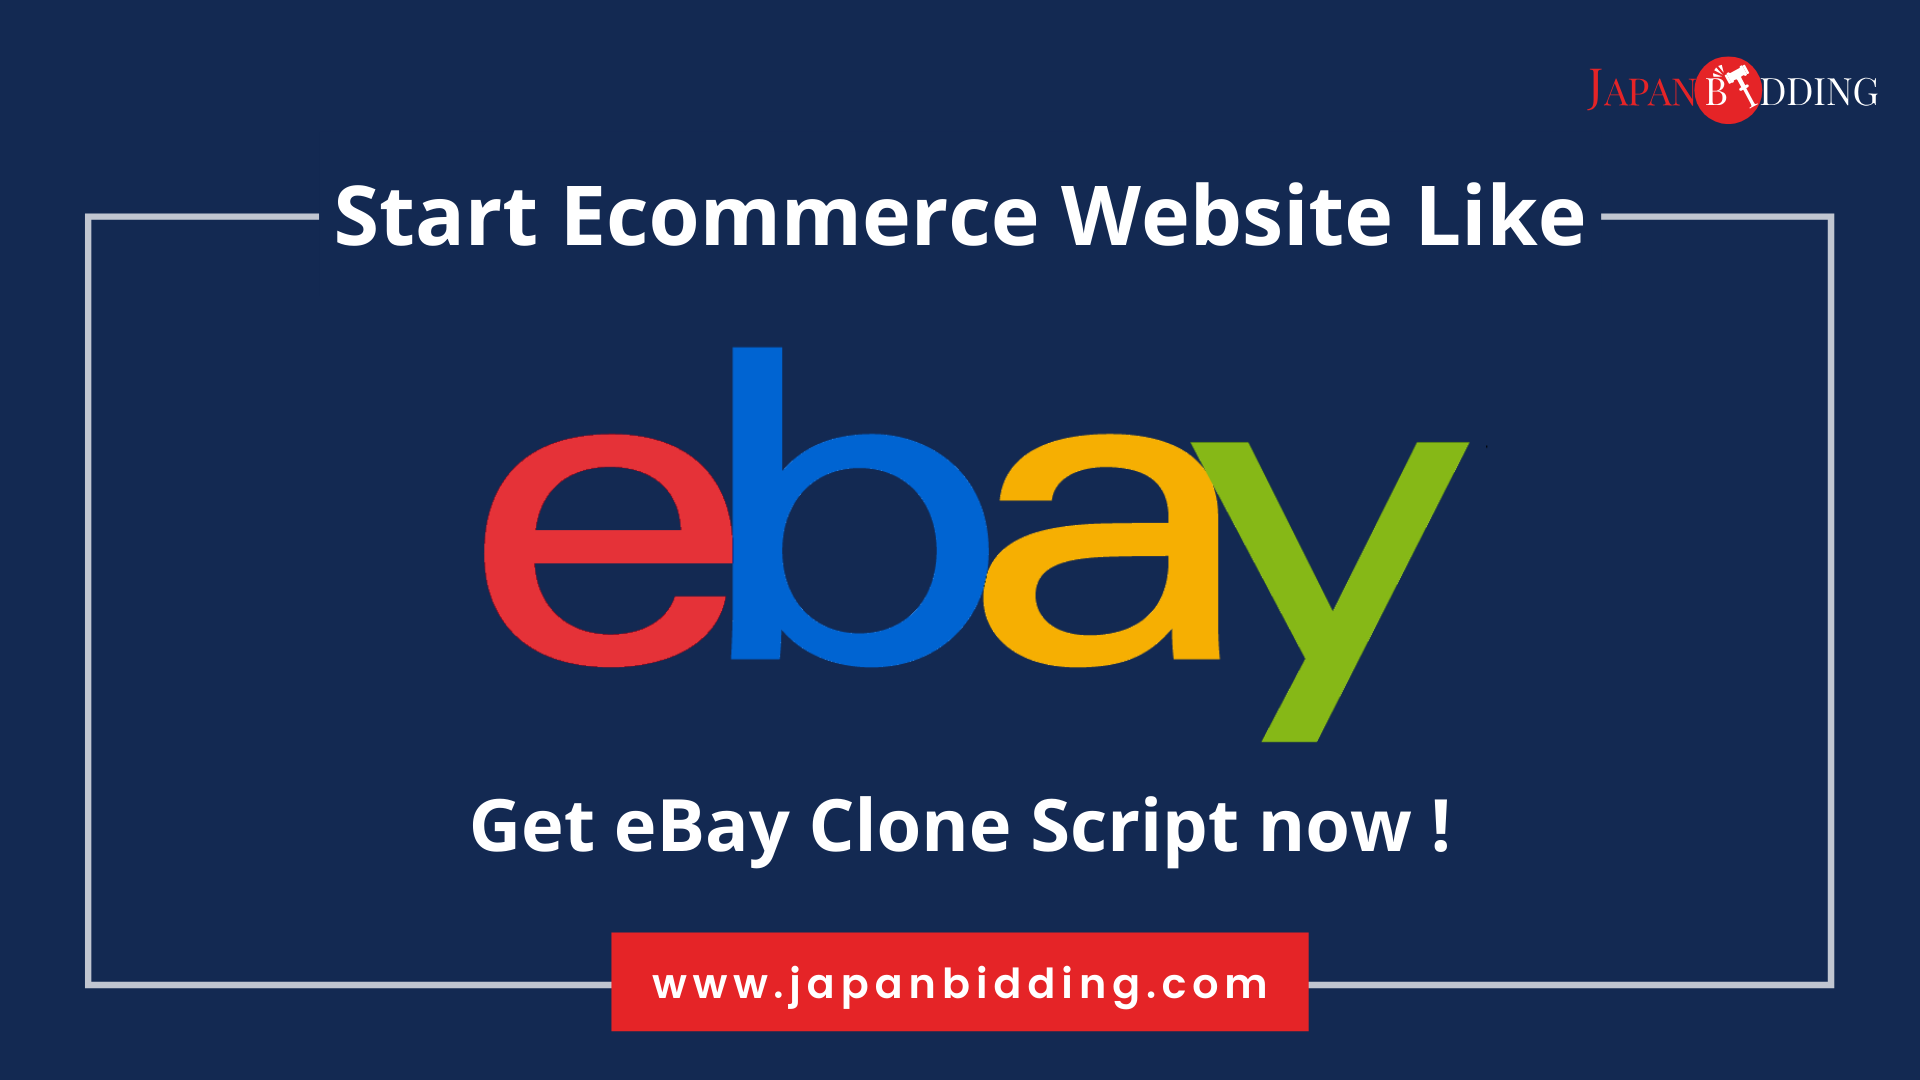 eBay Clone Script To Start Website like eBay